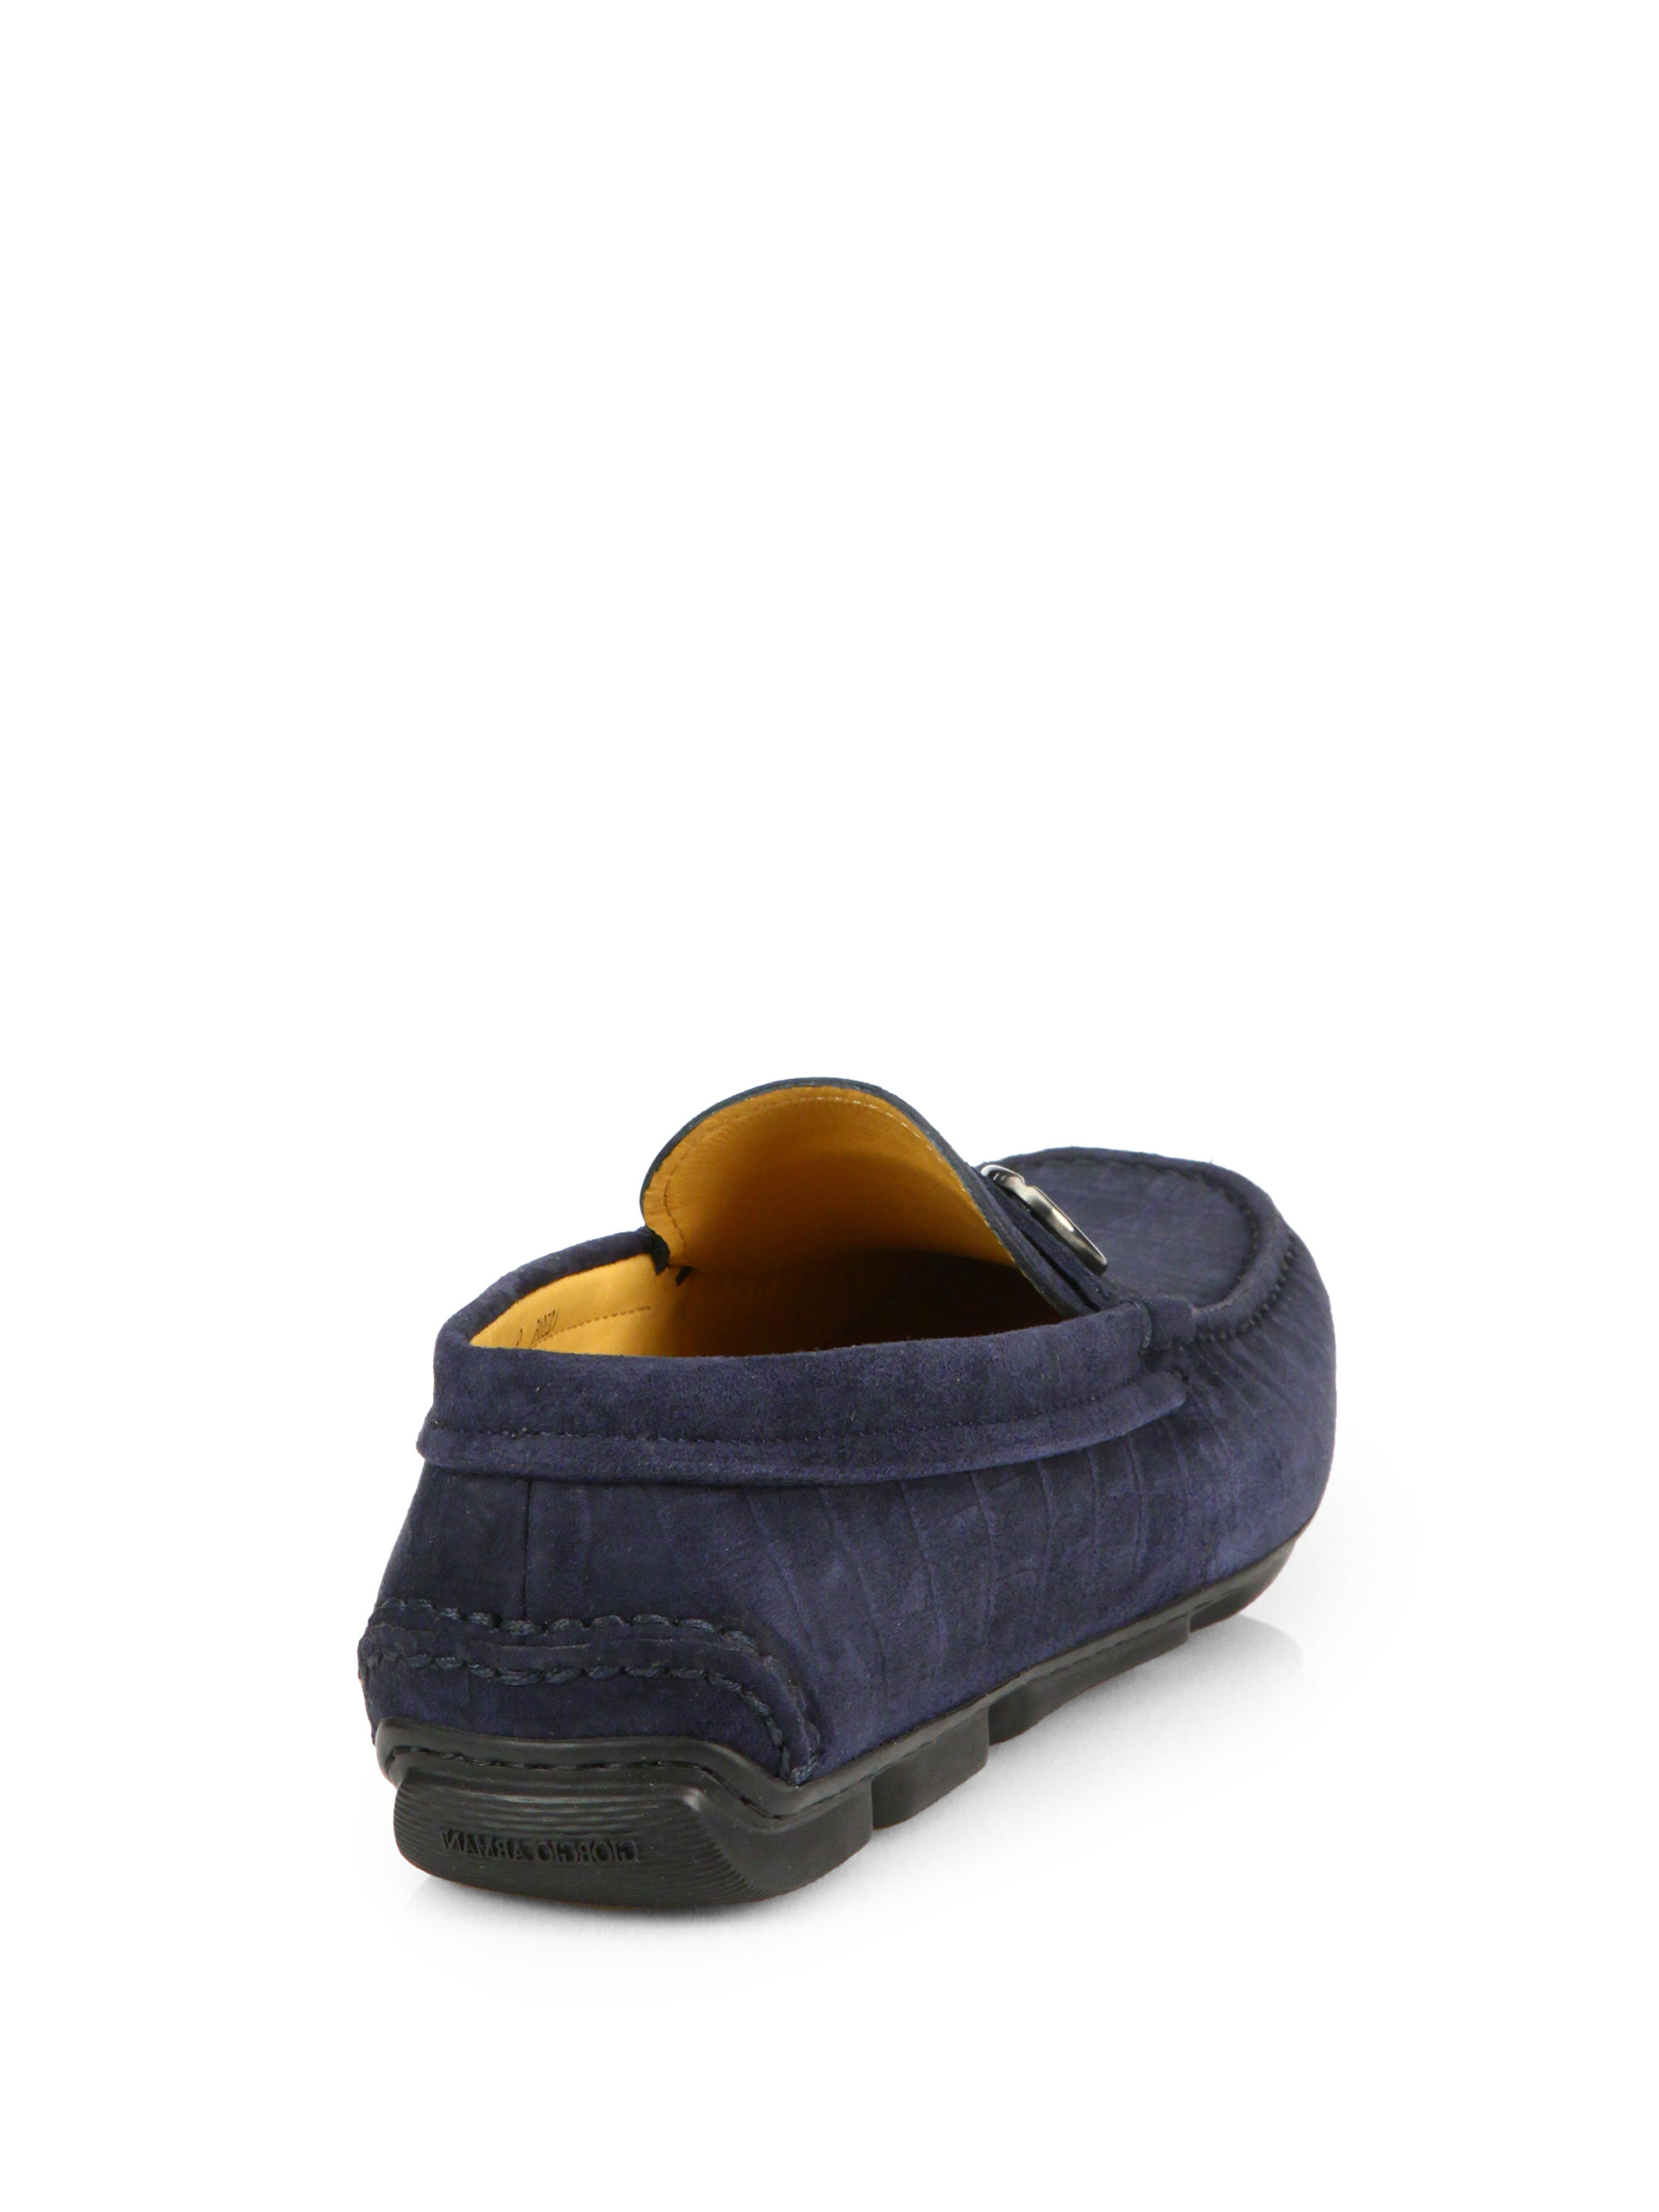 db575bea2f65 Lyst - Giorgio Armani Croc-Embossed Suede Driving Loafers in Blue ...